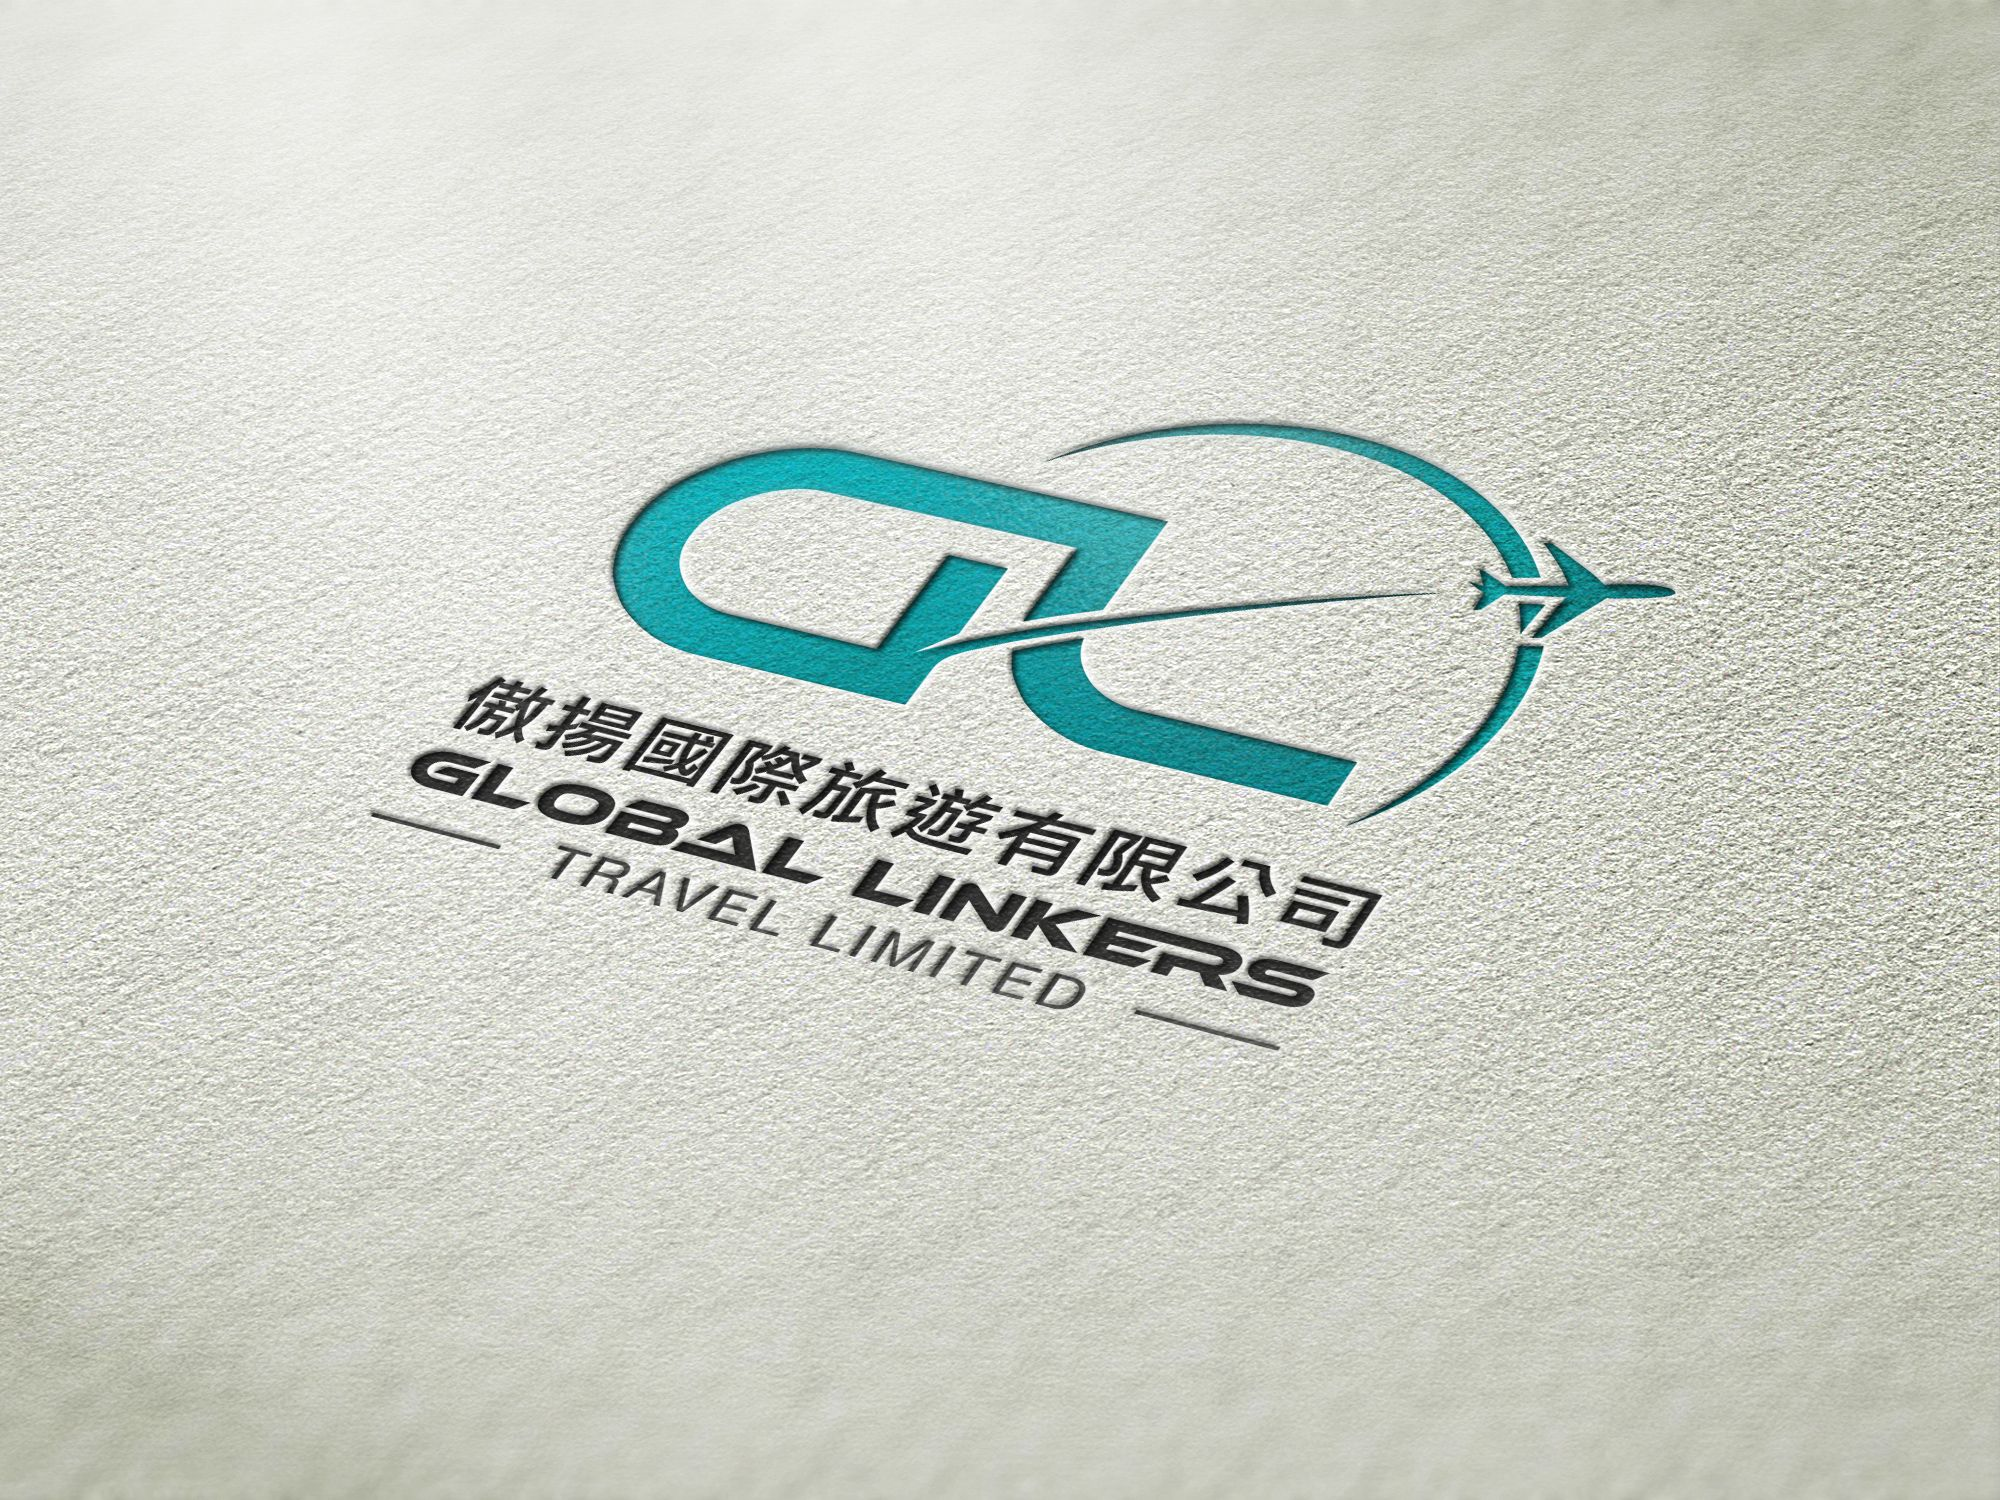 Client name : Global Linkers Travel Limited (Travel Agent ...